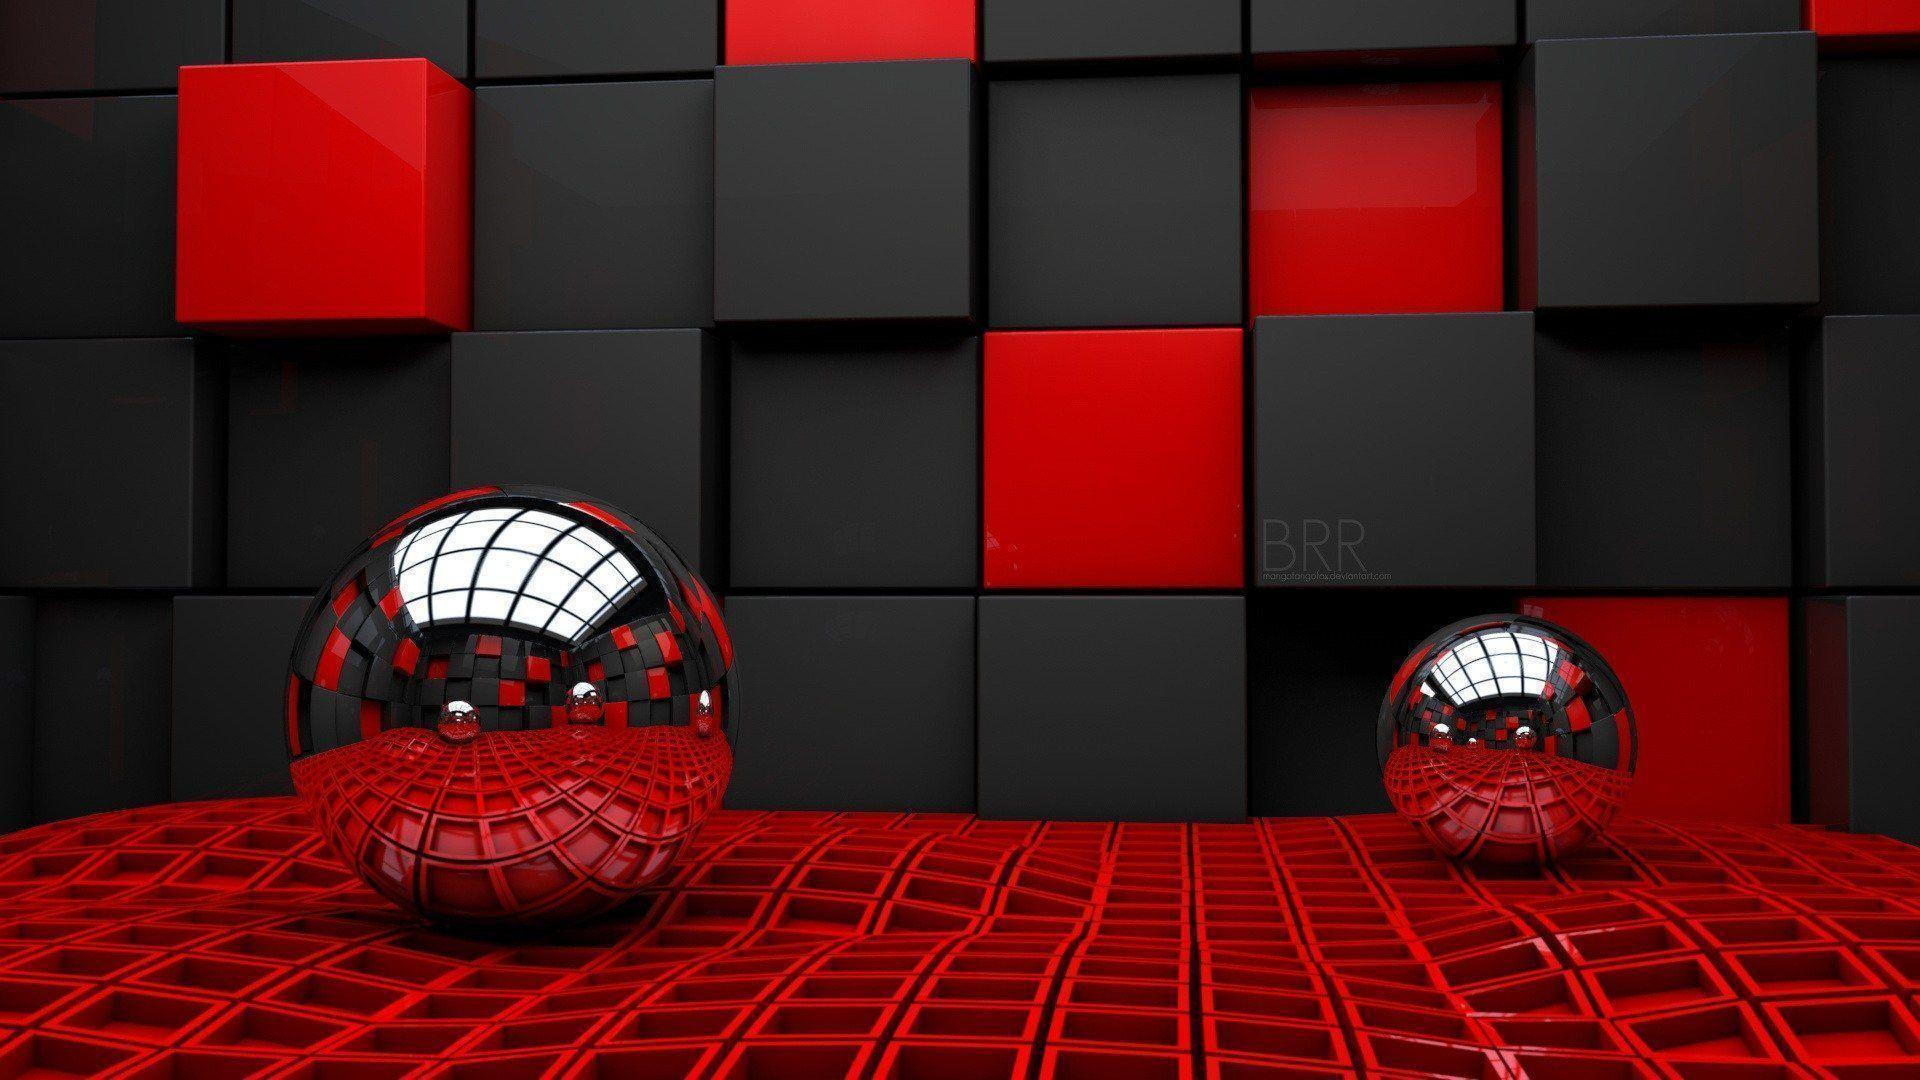 Cool Red Image Wallpapers Wallpapers computer